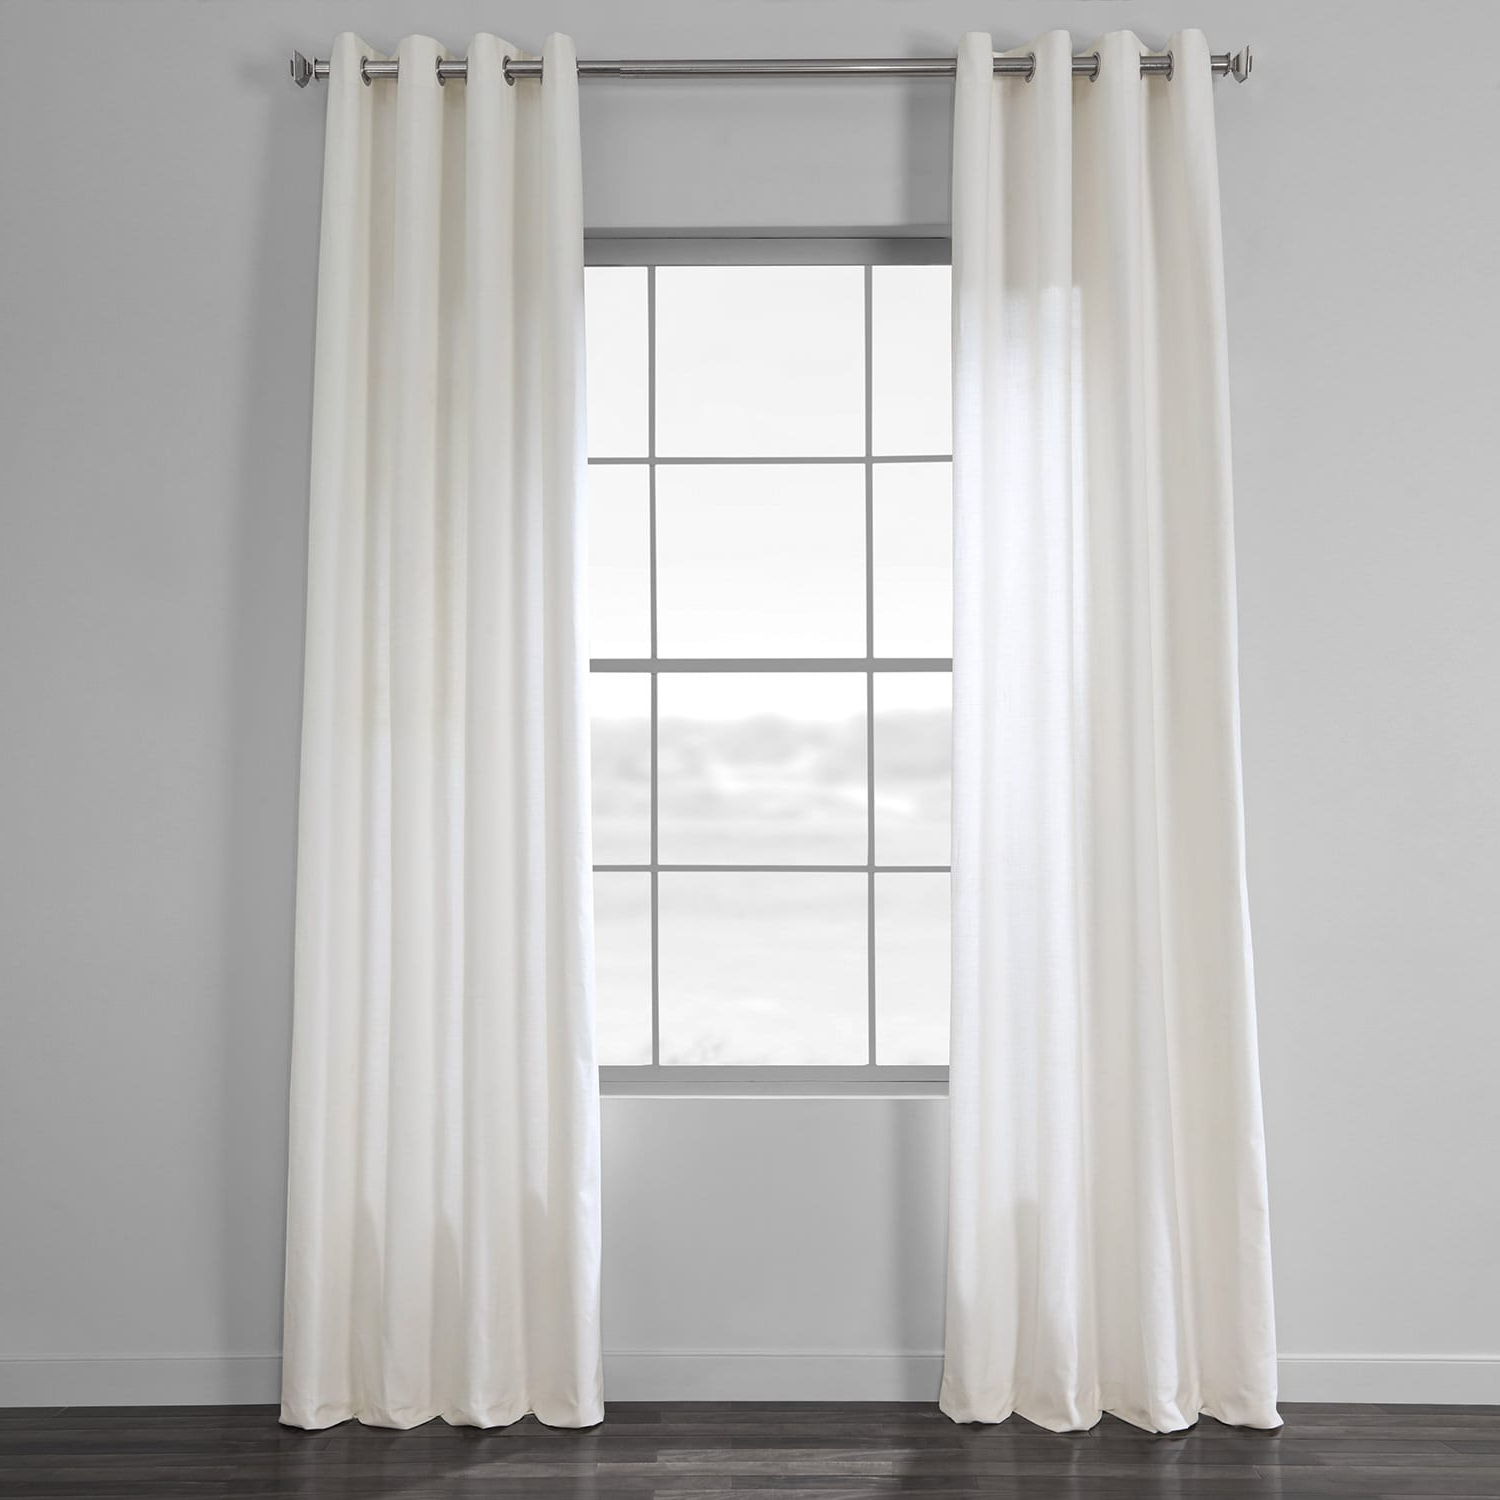 Most Recently Released Solid Country Cotton Linen Weave Curtain Panels Regarding Pacific Pearl Country Cotton Linen Weave Grommet Curtain (View 11 of 20)